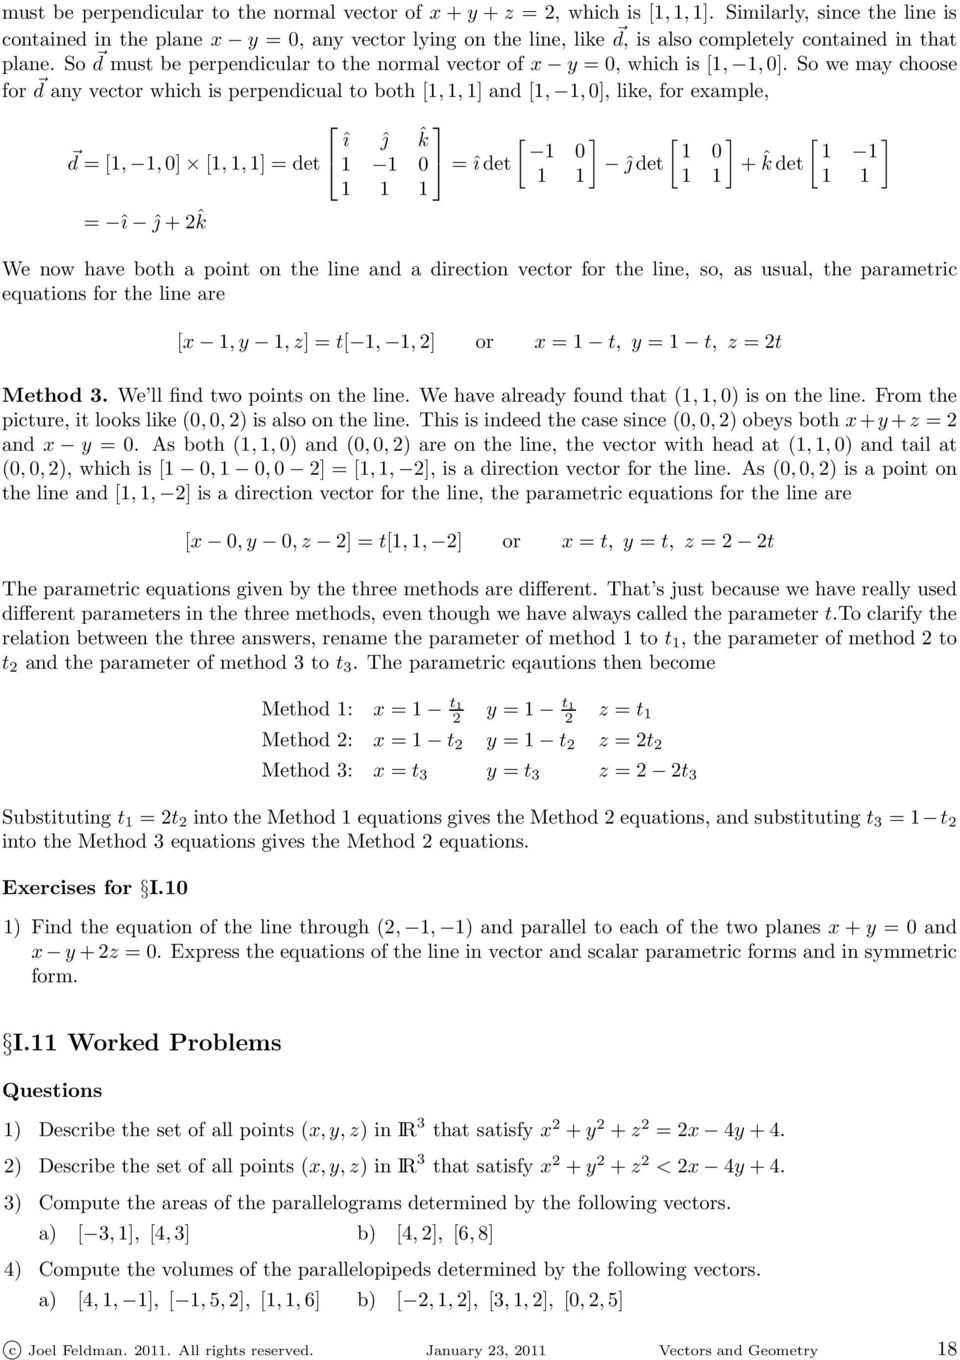 So d must be perpendicular to the normal vector of x y = 0, which is [1, 1,0].